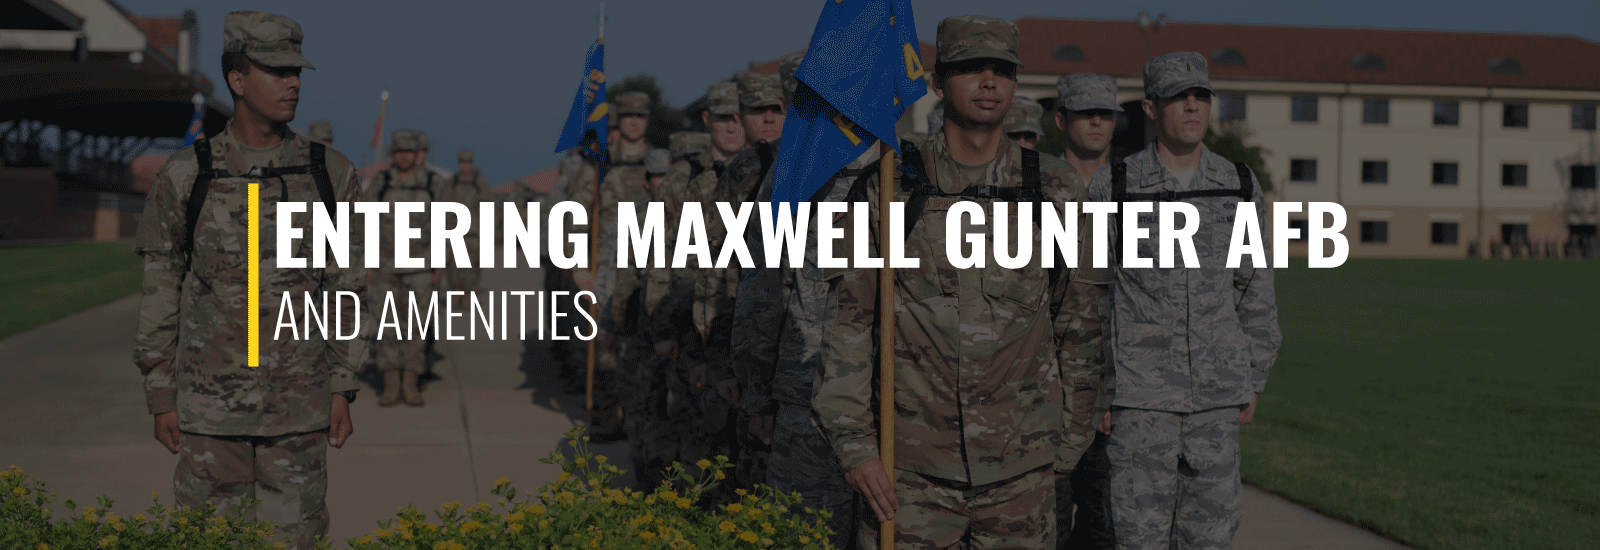 Entering Maxwell-Gunter Air Force Base and Amenities